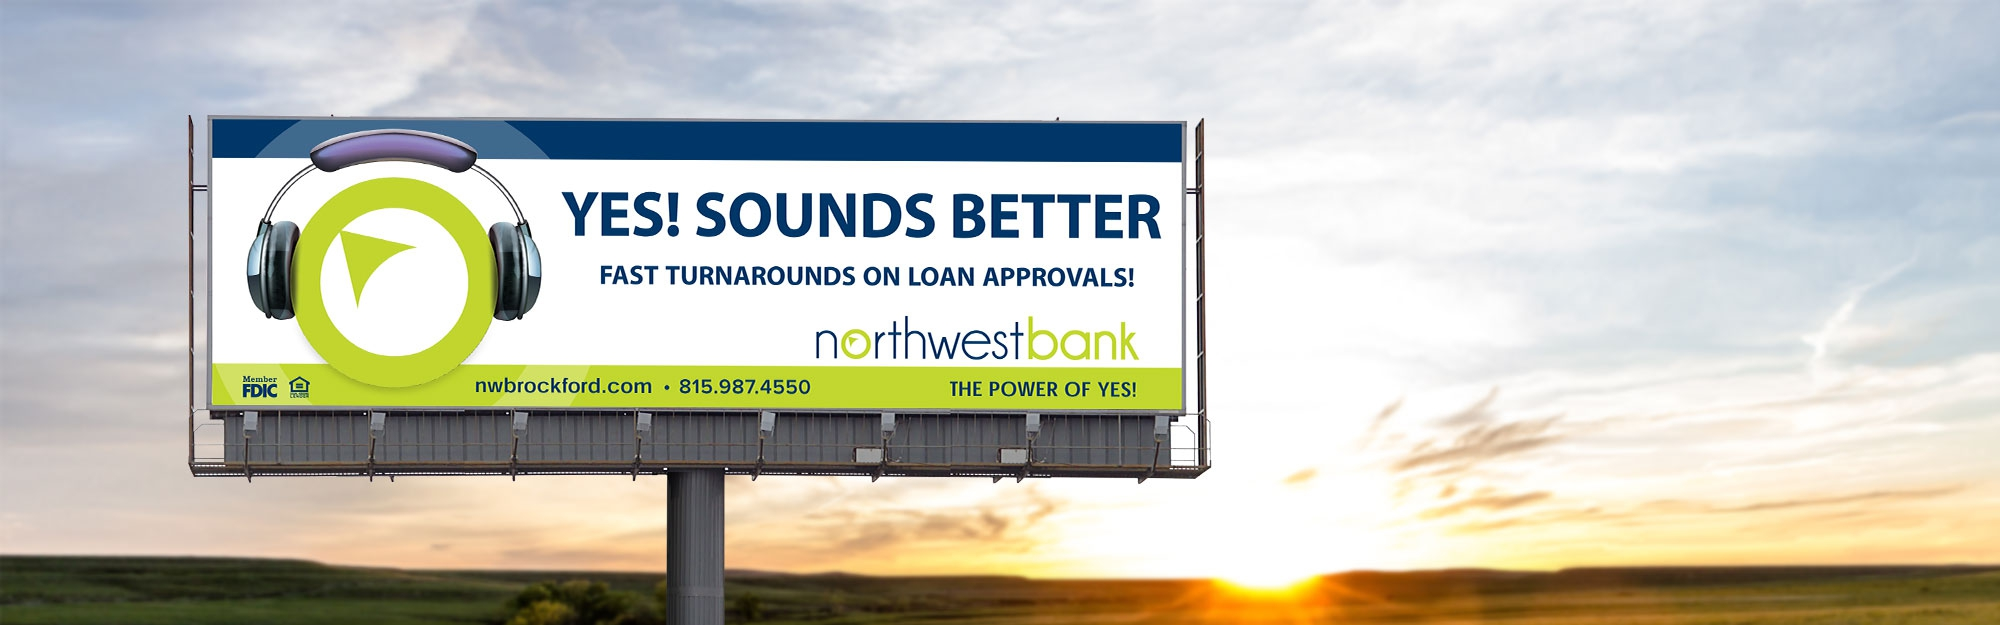 Fast Turnarounds on Loan Approvals